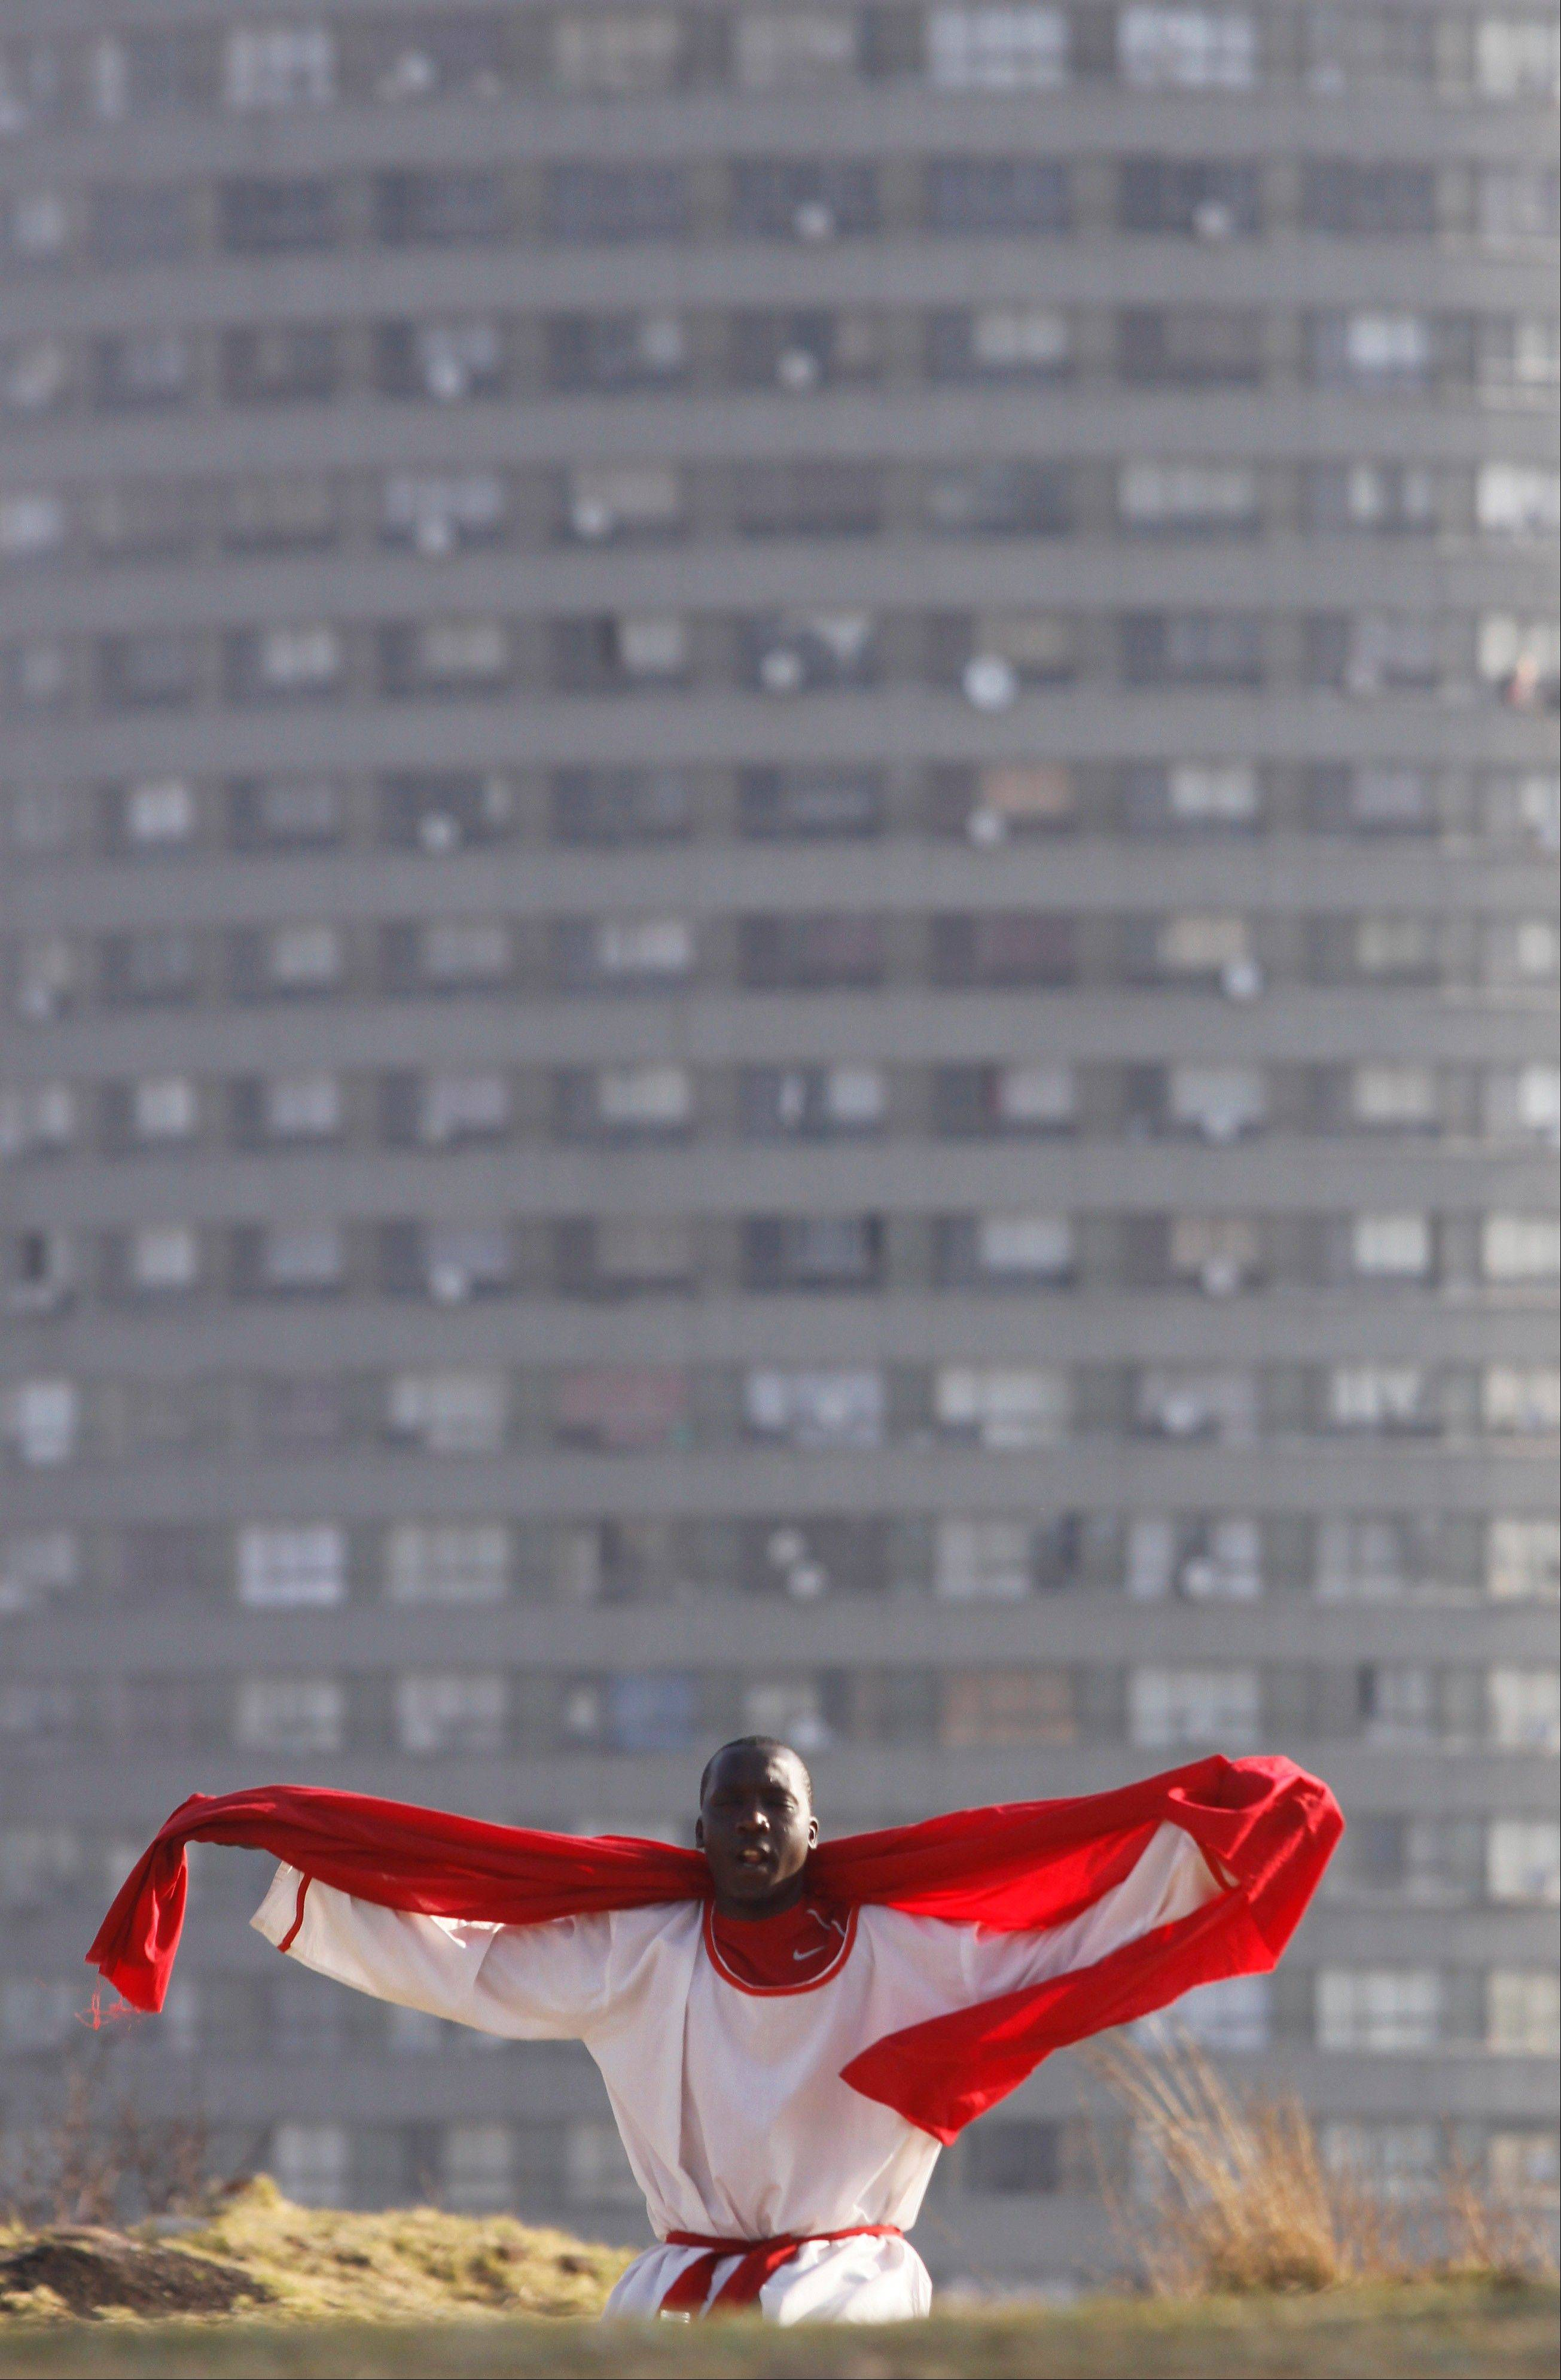 Associated Press/Denis FarrellA worshipper offers prayers on top of a hill overlooking Johannesburg city Saturday July 6. There was no official update Saturday morning on the condition of the 94-year-old former president, Nelson Mandela who is in critical but stable condition after being diagnosed with a recurring lung infection. He was taken to a hospital in Pretoria, the capital, on June 8. There have been calls for prayers to be offered for the former statesman's recovery.